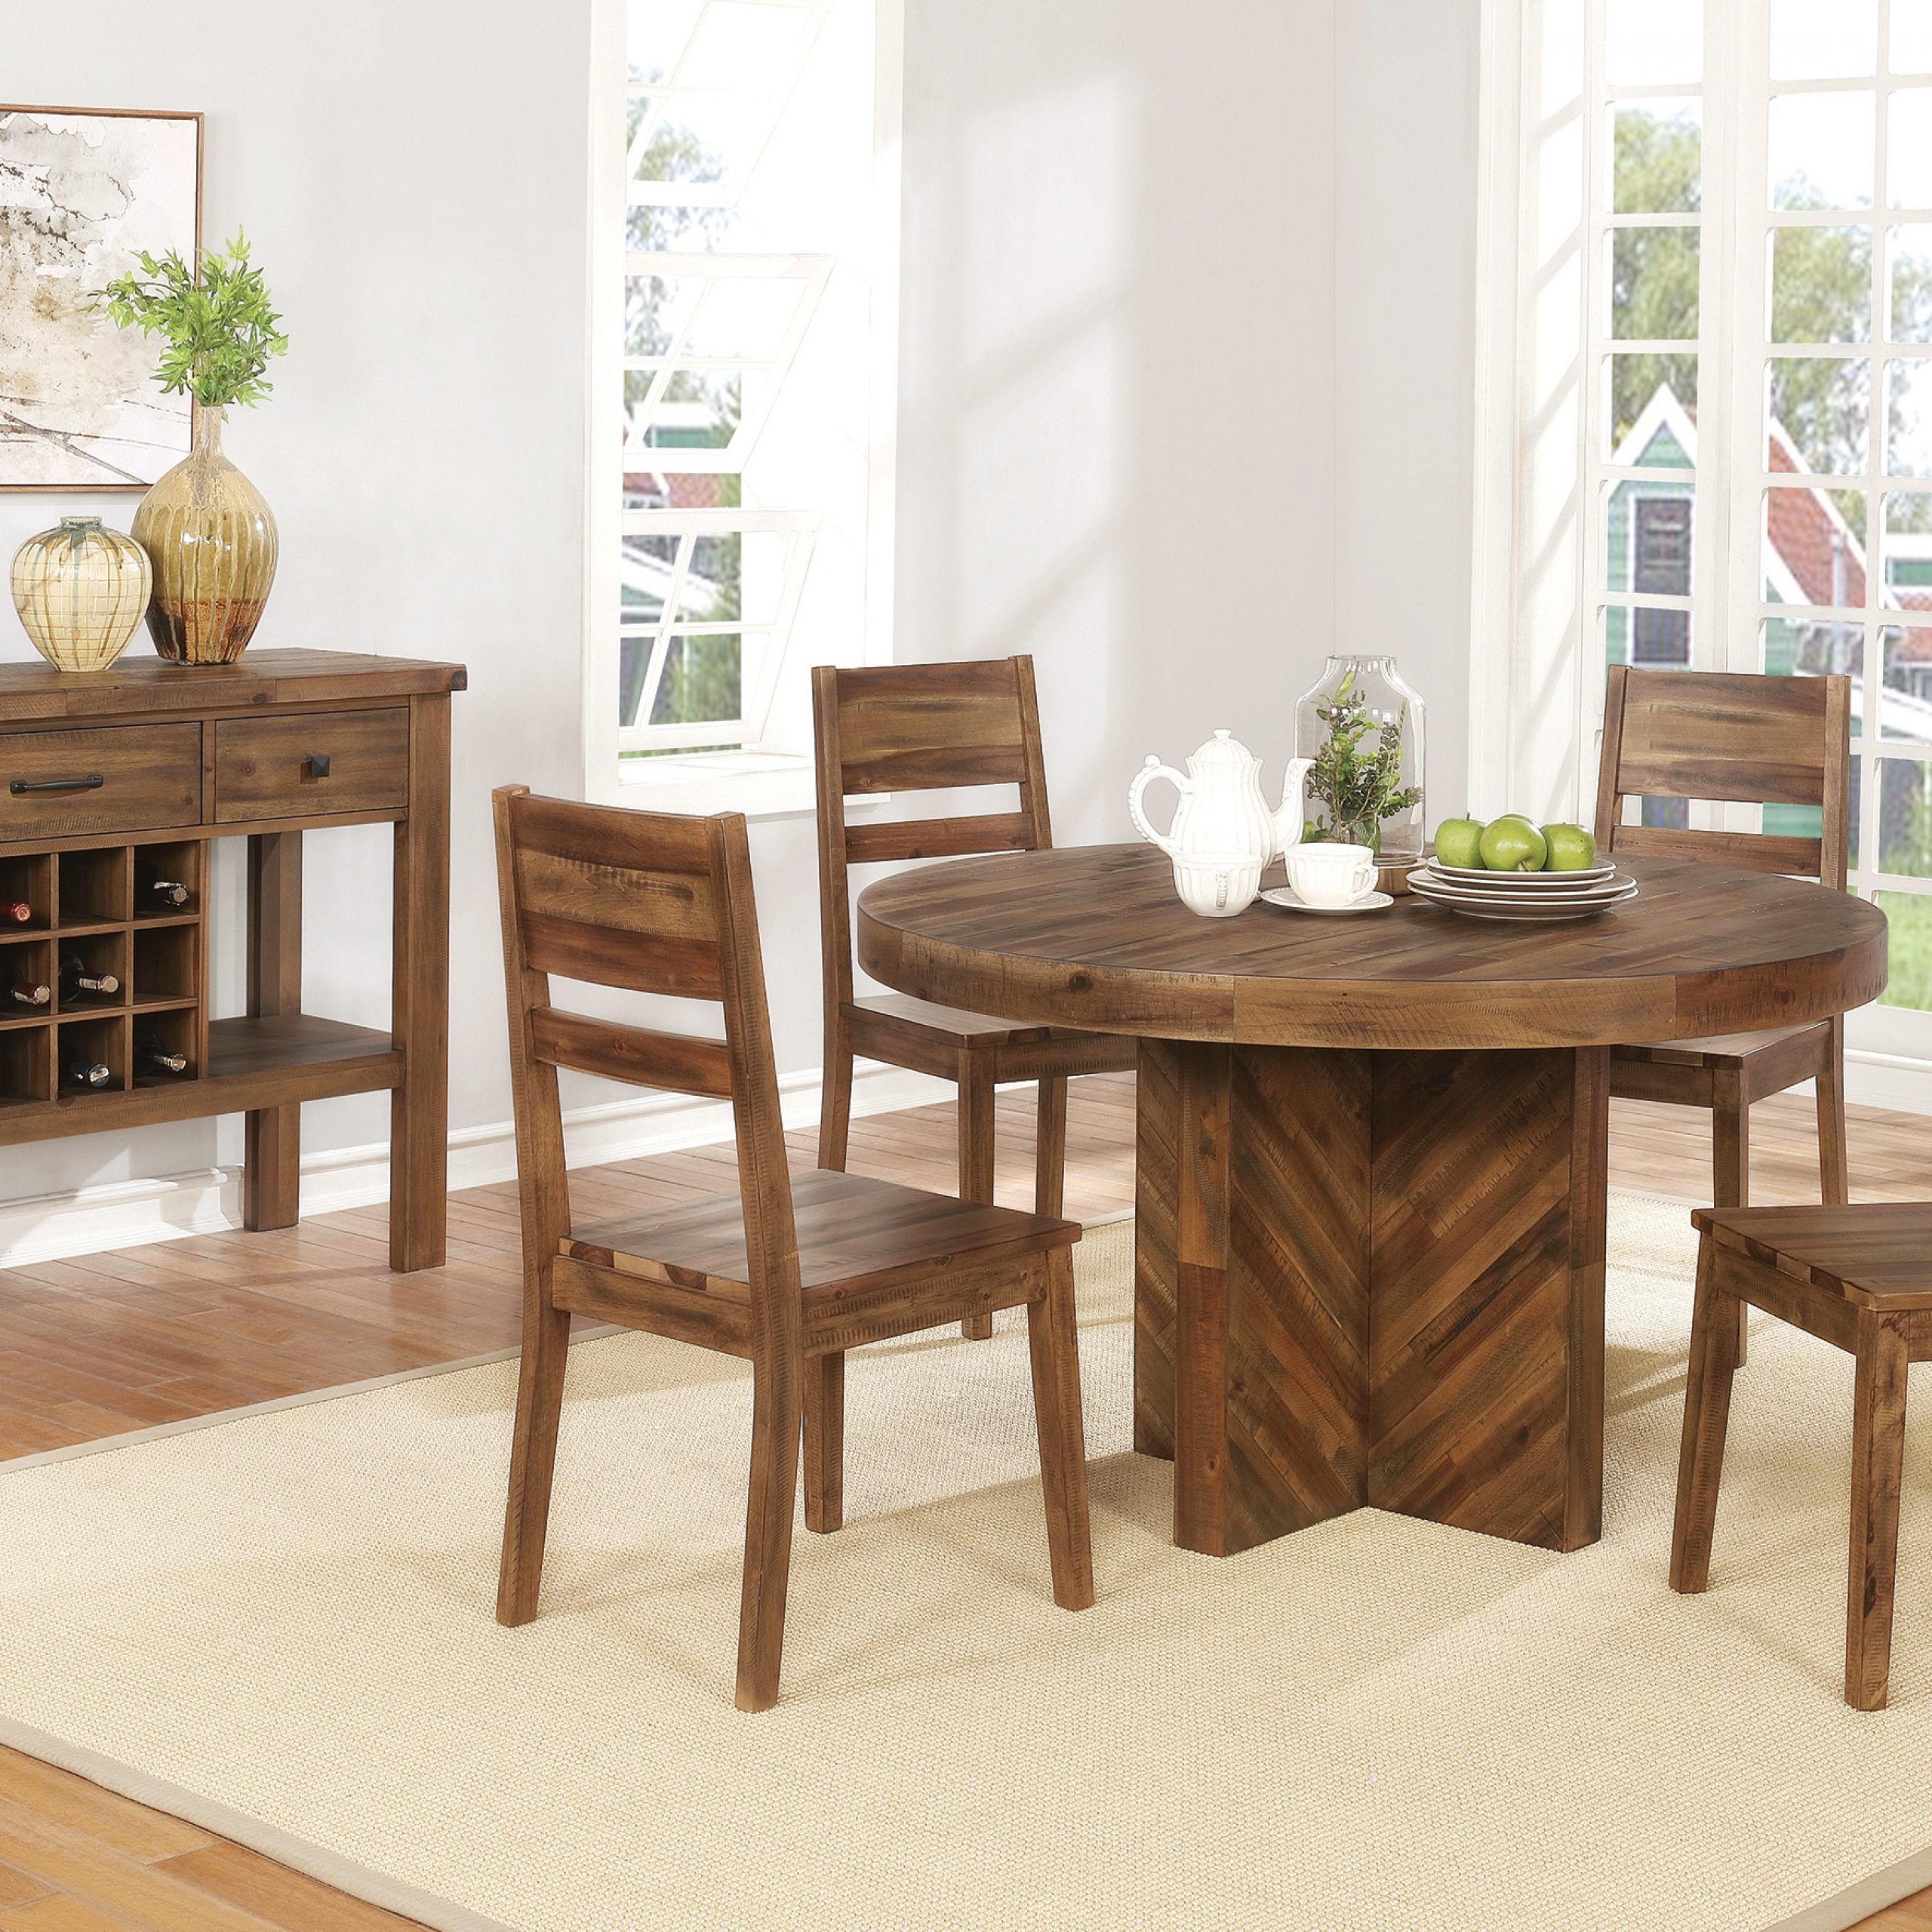 2020 Tucson Round Dining Table Varied Natural - Coaster Fine intended for Coaster Contemporary 6-Seating Rectangular Casual Dining Tables